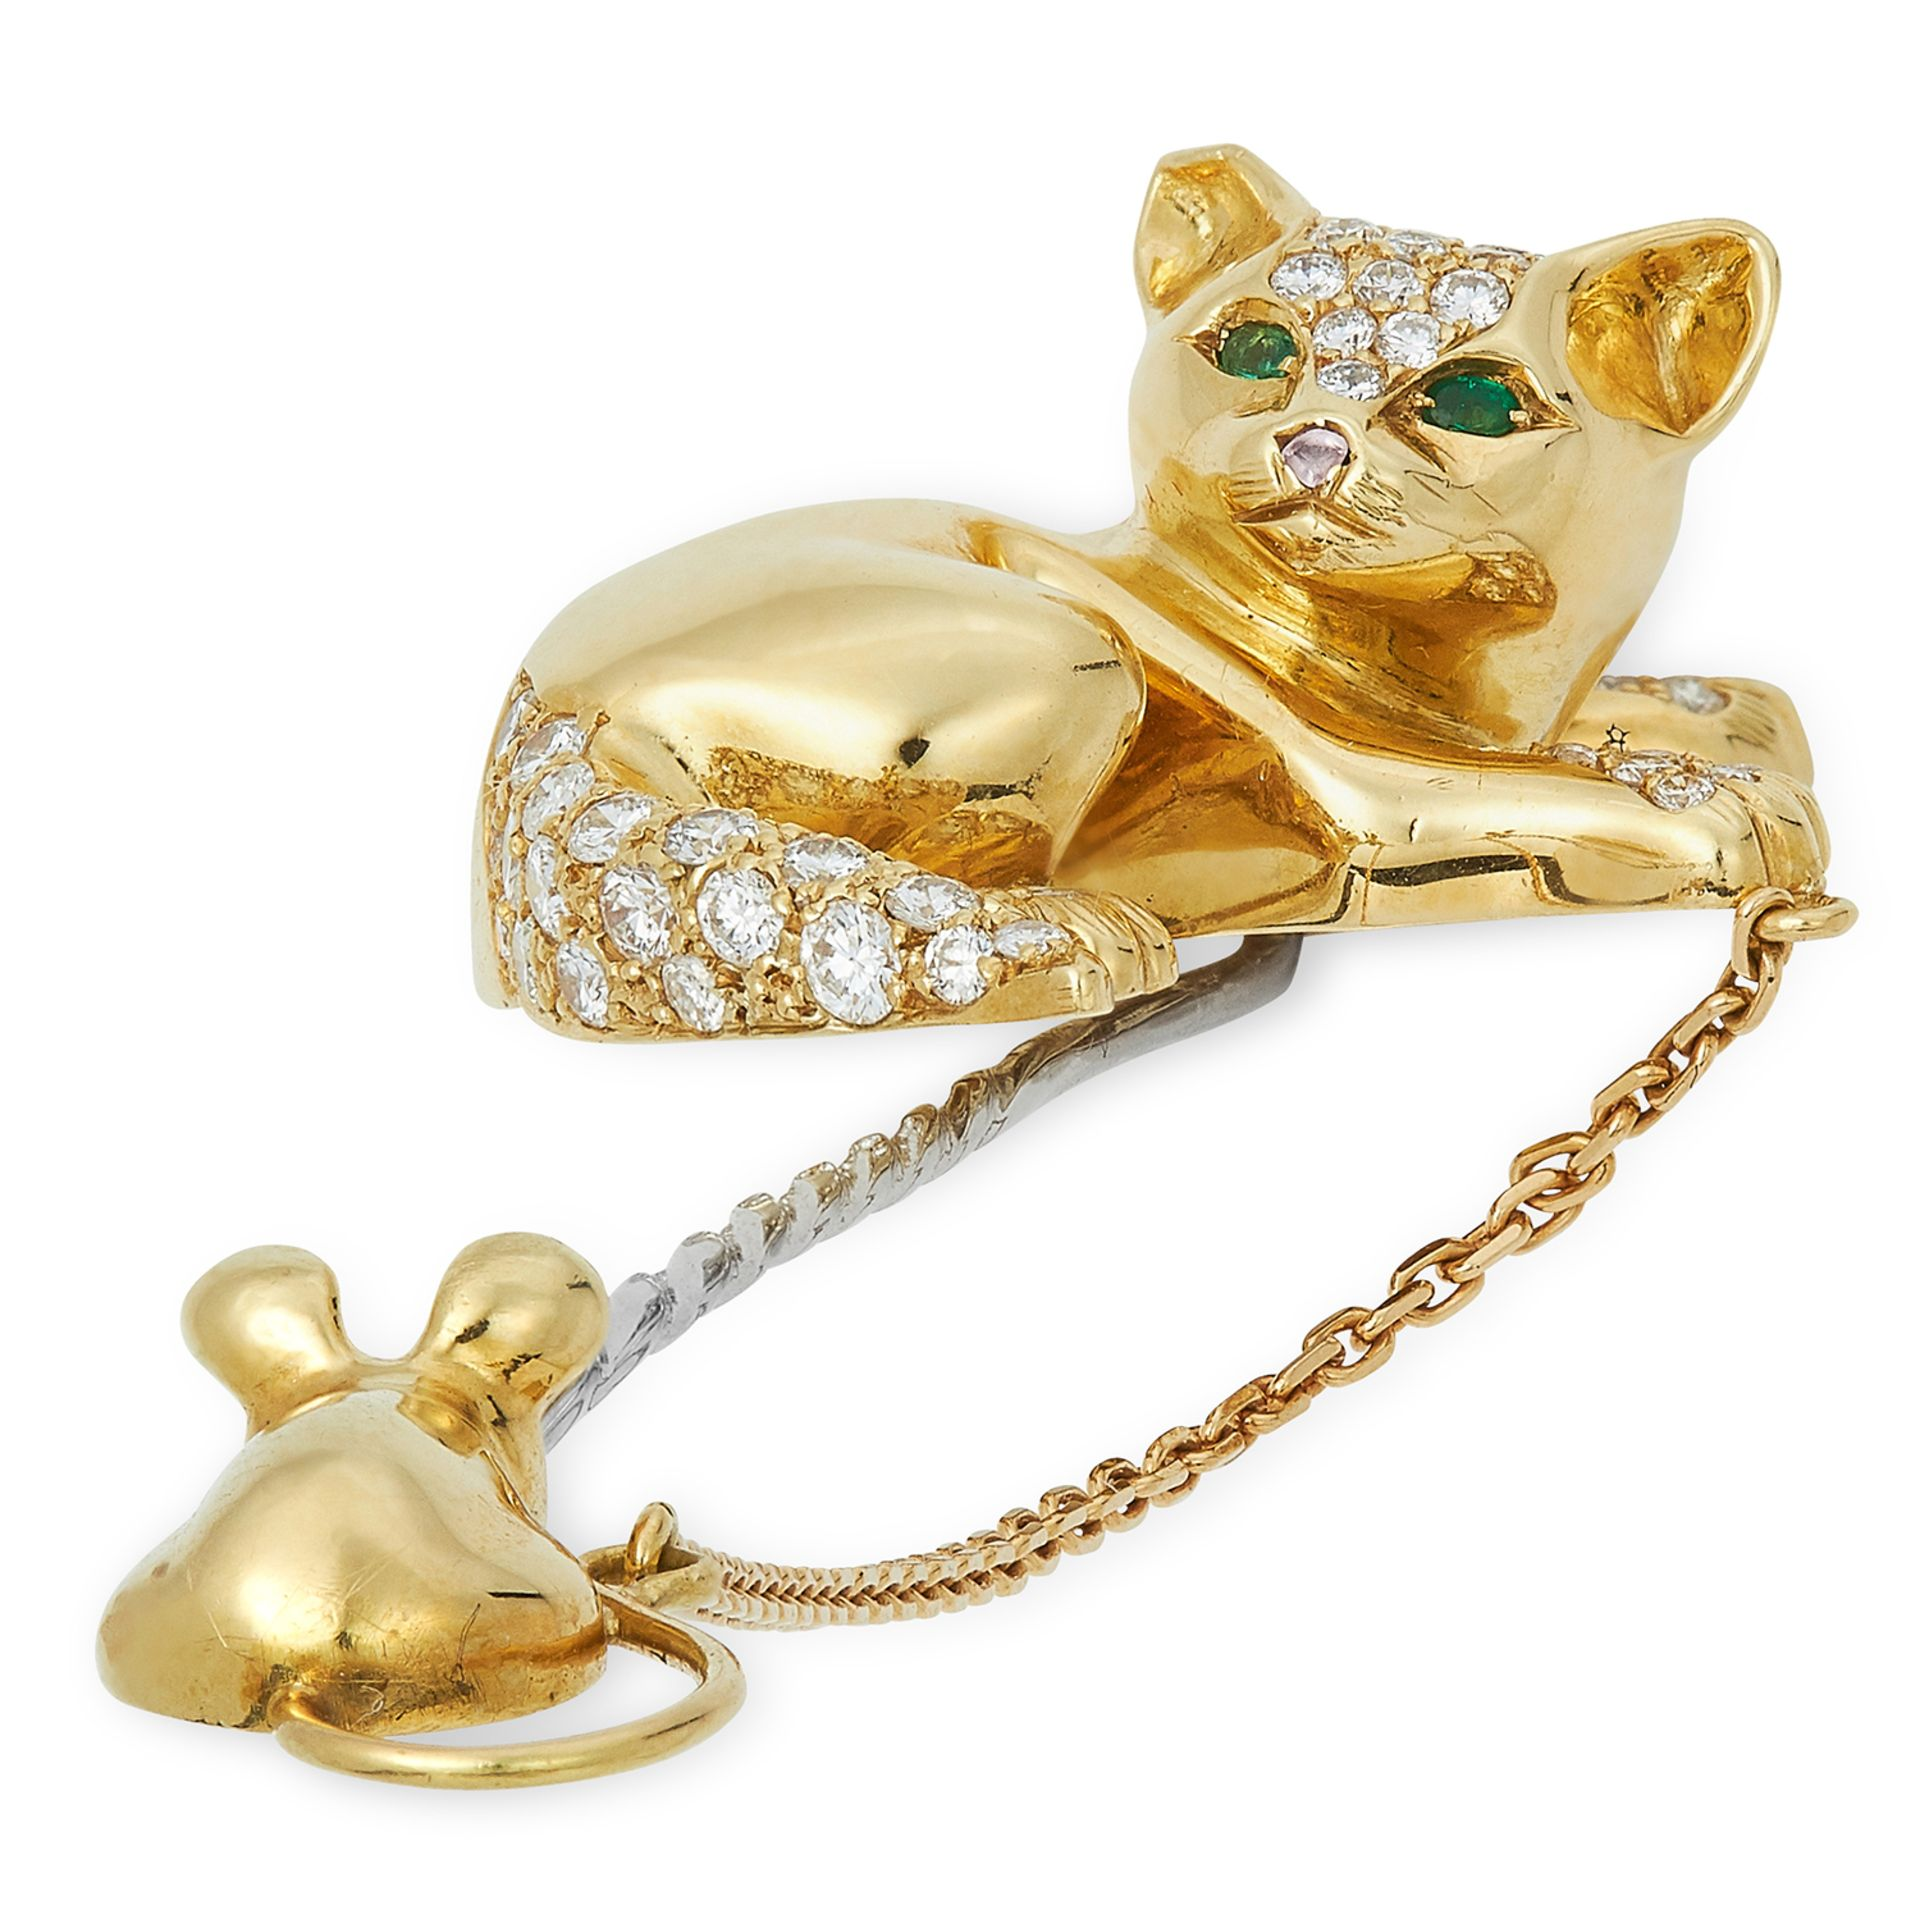 A DIAMOND AND EMERALD CAT AND MOUSE PIN / BROOCH, DAVID MORRIS in 18ct yellow gold, the pin